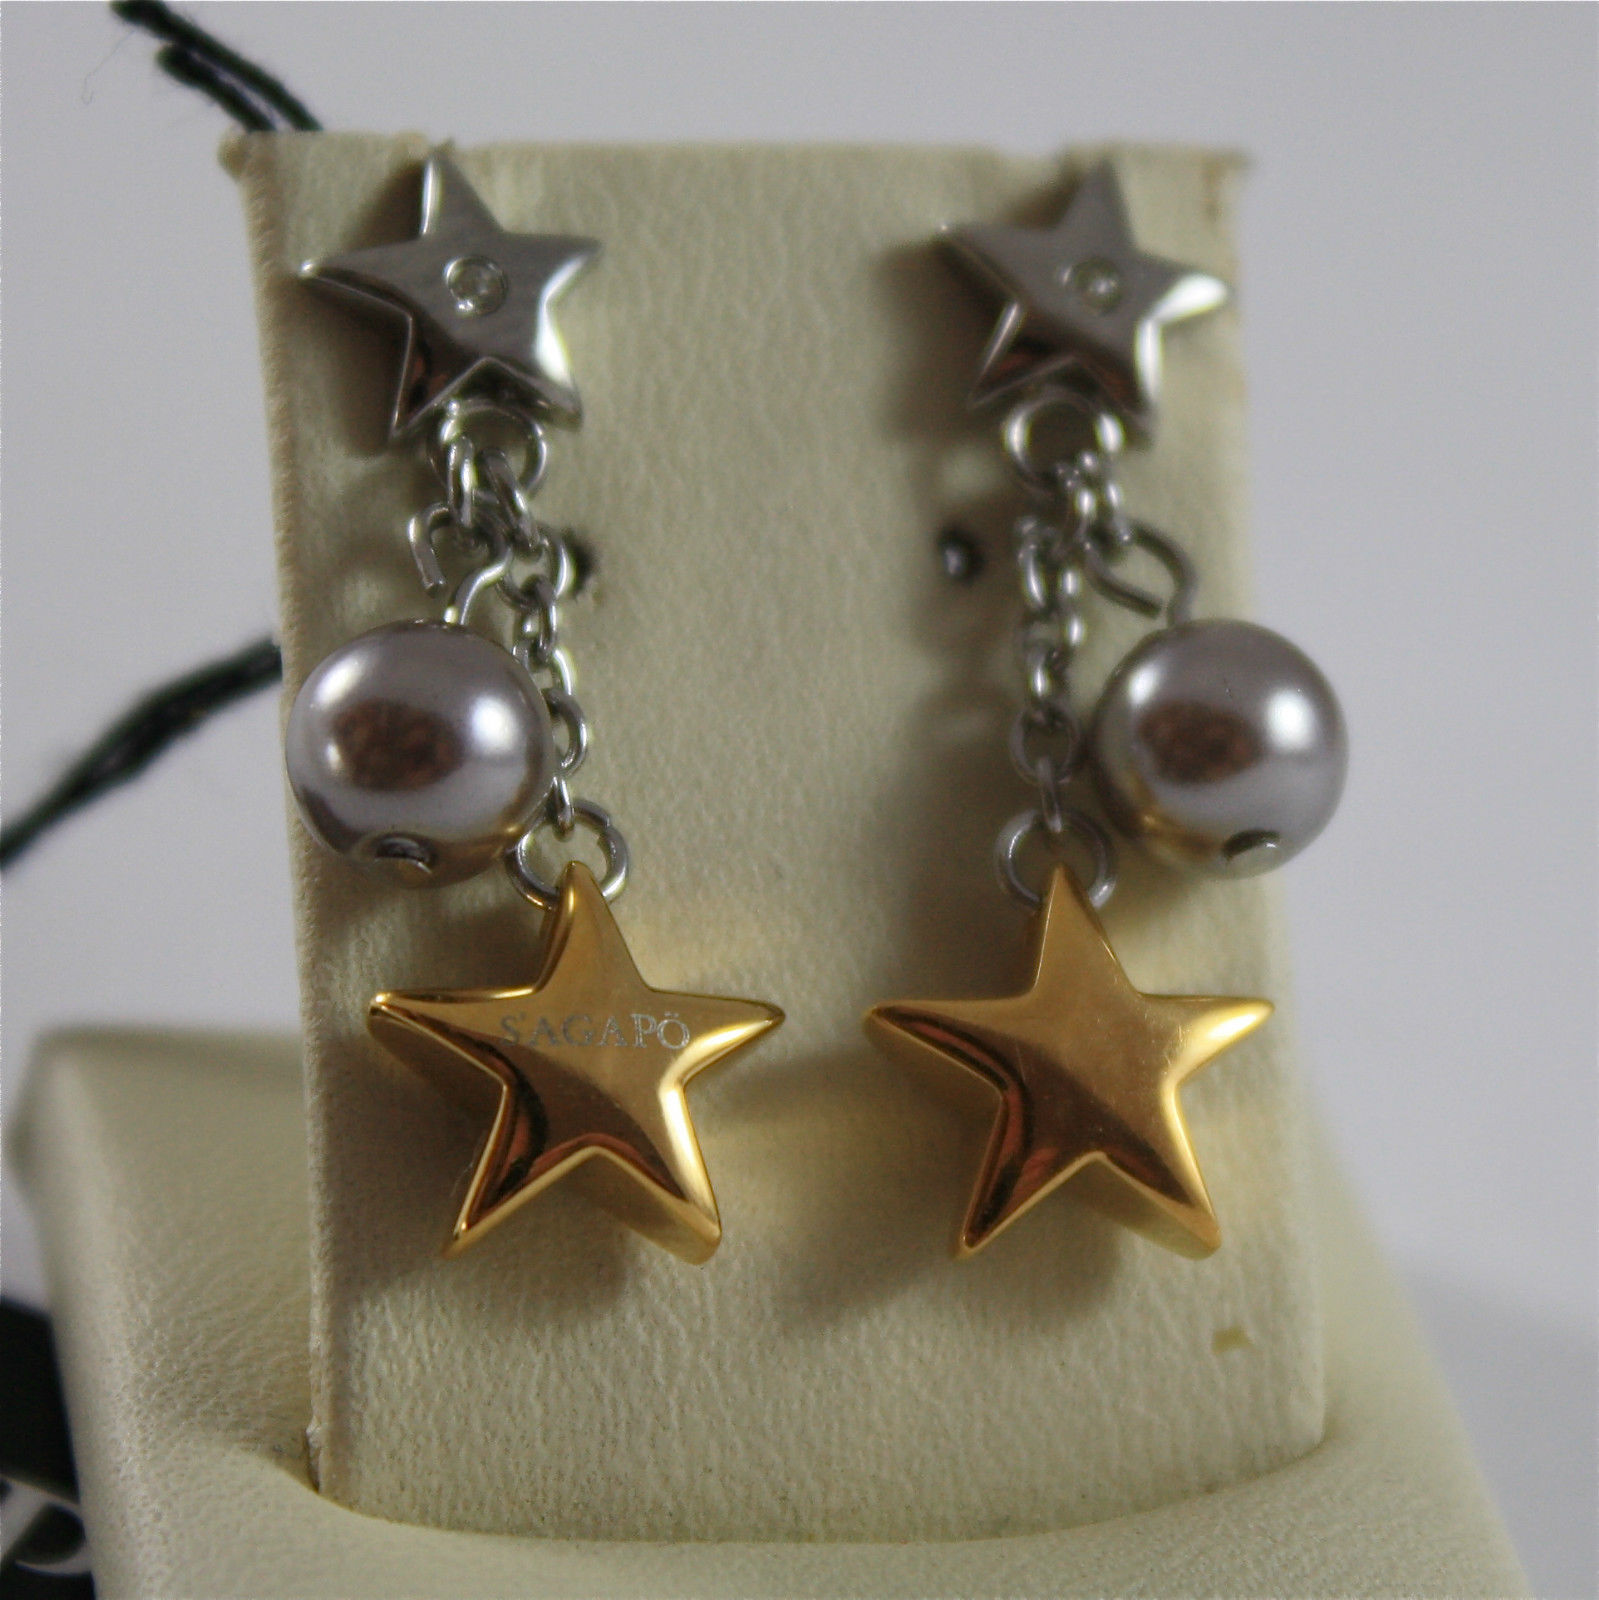 S'AGAPO' EARRINGS, 316L STEEL, PLATED STARS AND SPHERES, FACETED CRYSTALS.